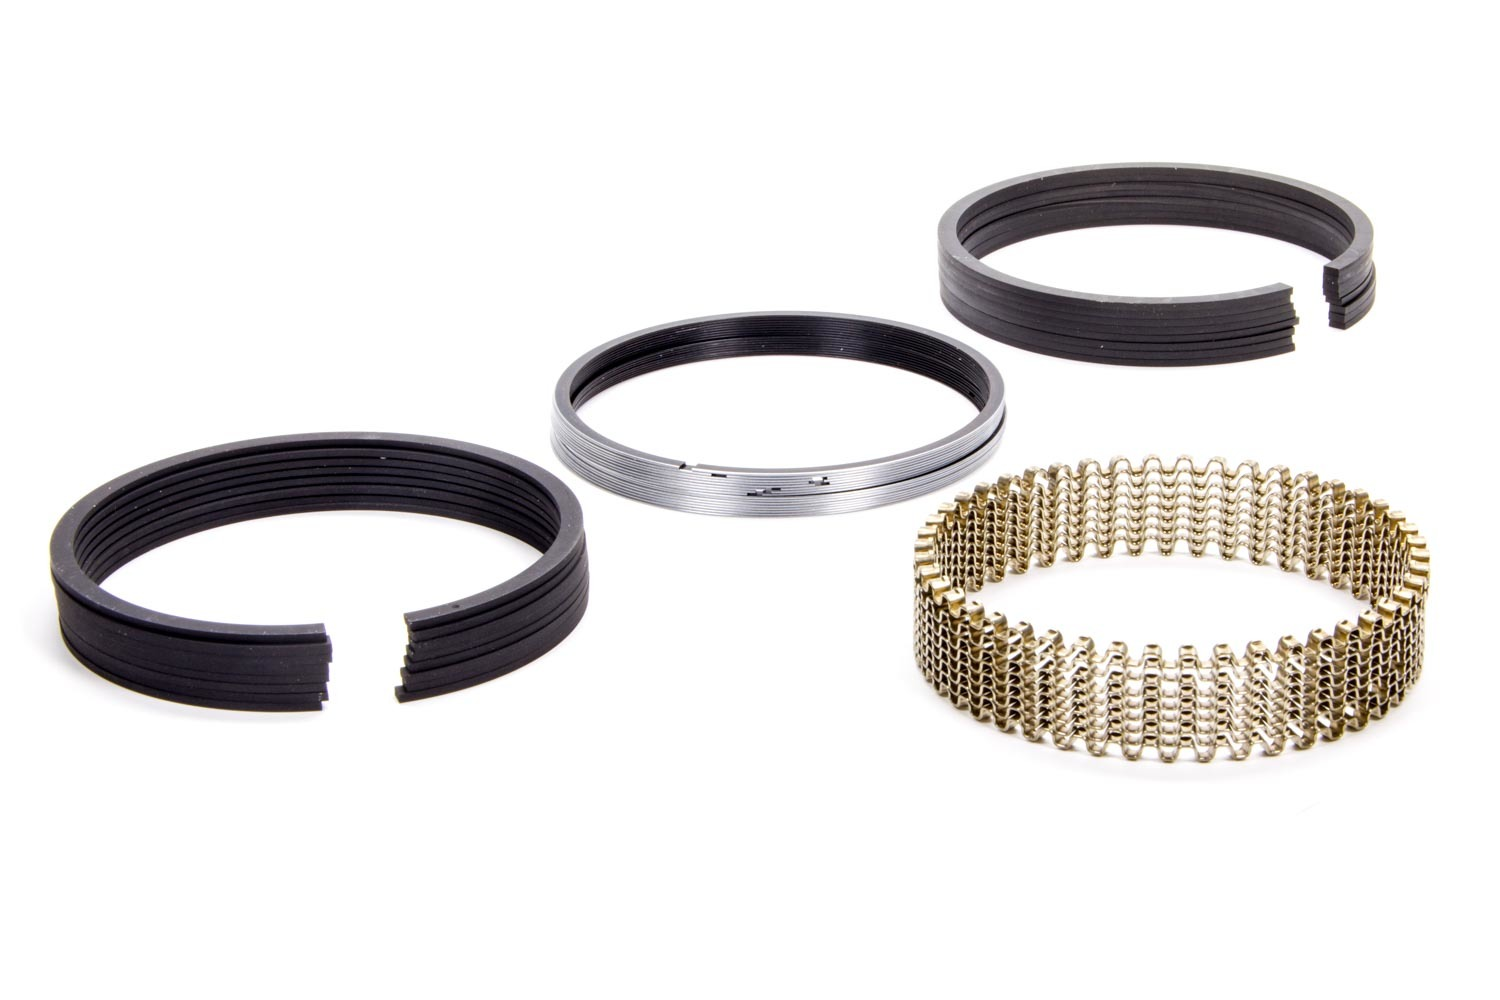 Hastings 139040 Piston Rings, 4.040 in Bore, 5/64 x 5/64 x 3/16 in Thick, Standard Tension, Iron, 8 Cylinder, Kit